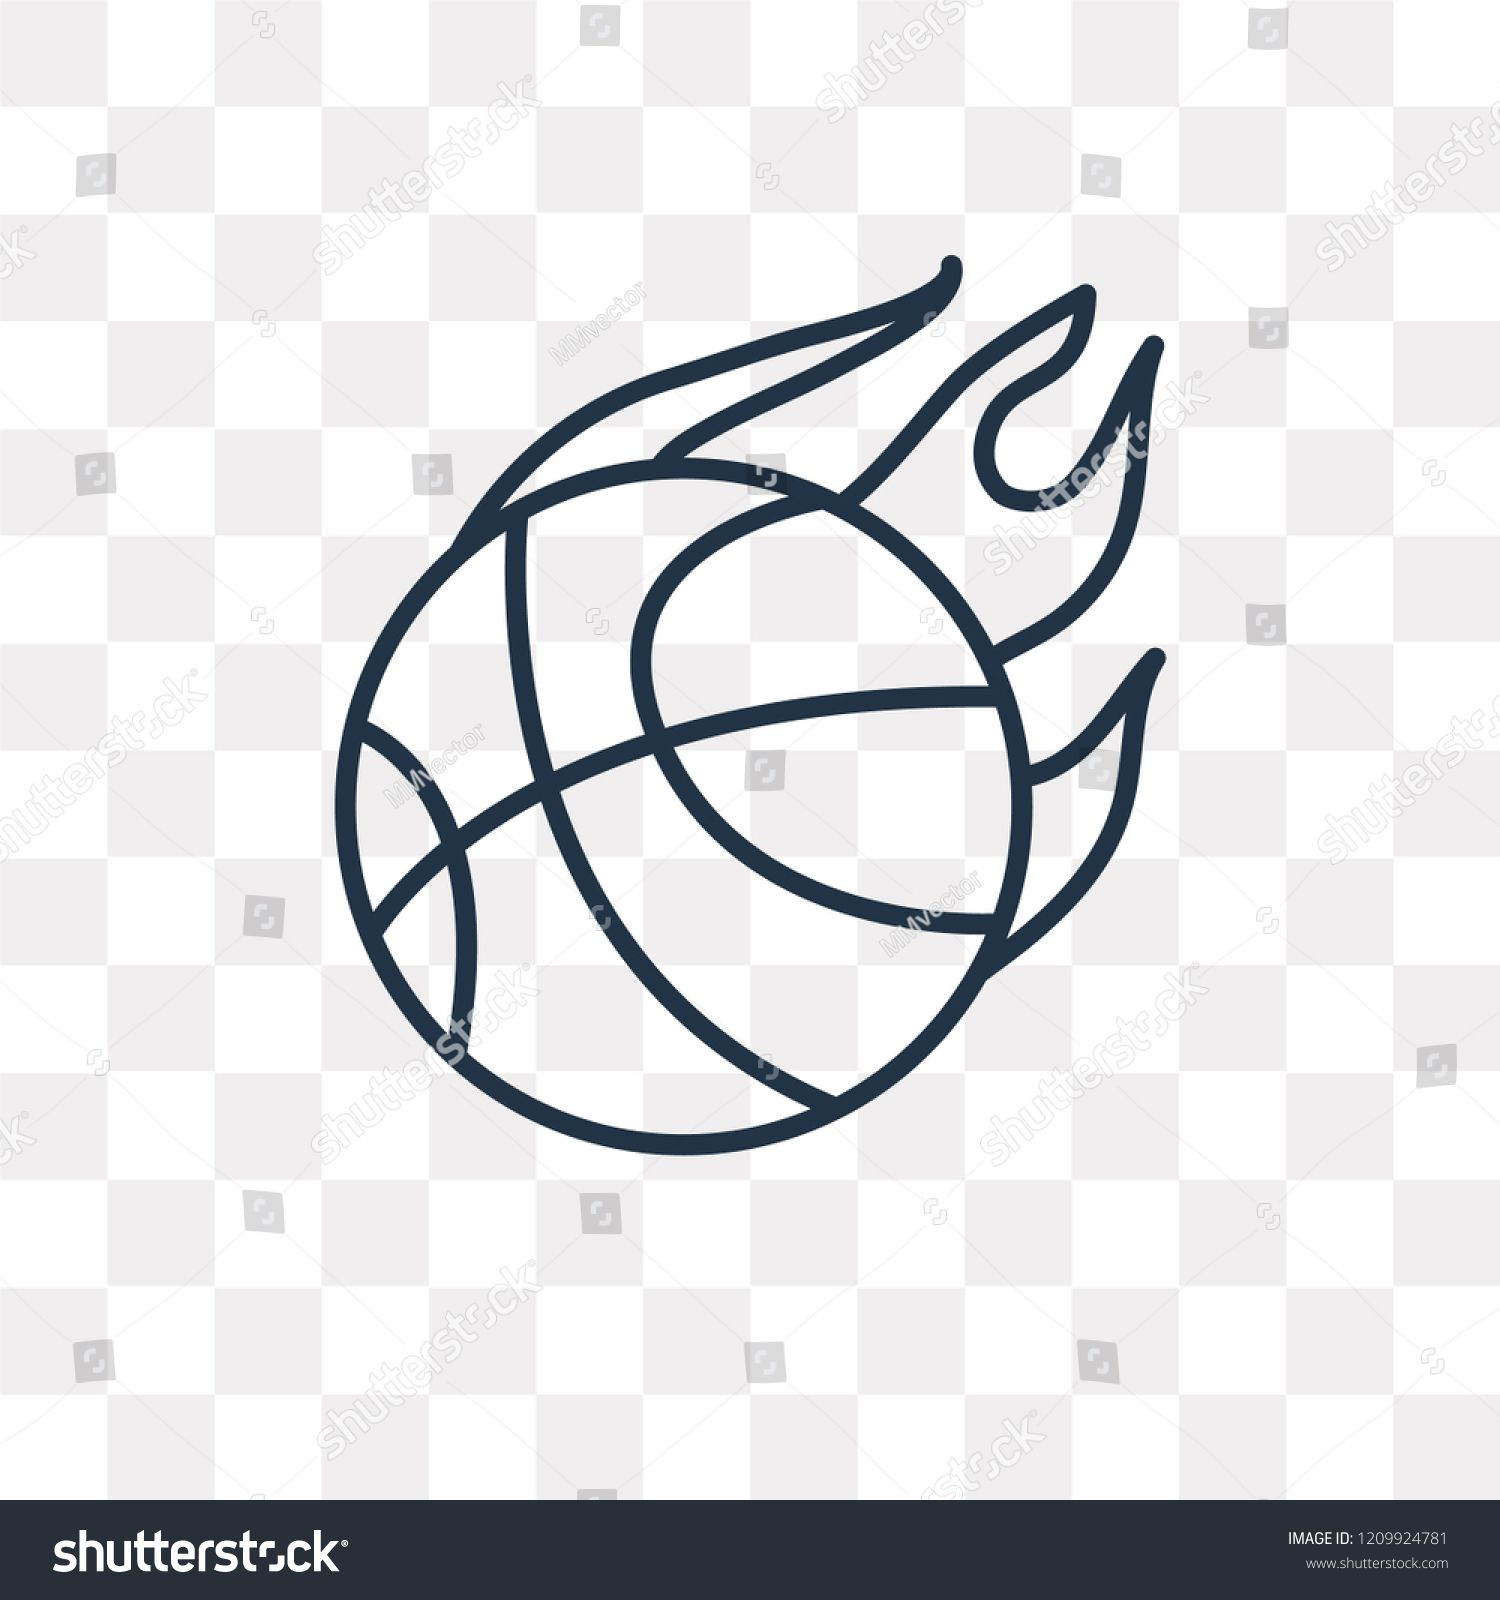 Basketball Basketball Clipart Creative Dream Png Transparent Clipart Image And Psd File For Free Download Graffiti Art Canvas Art Prints Graffiti Illustration